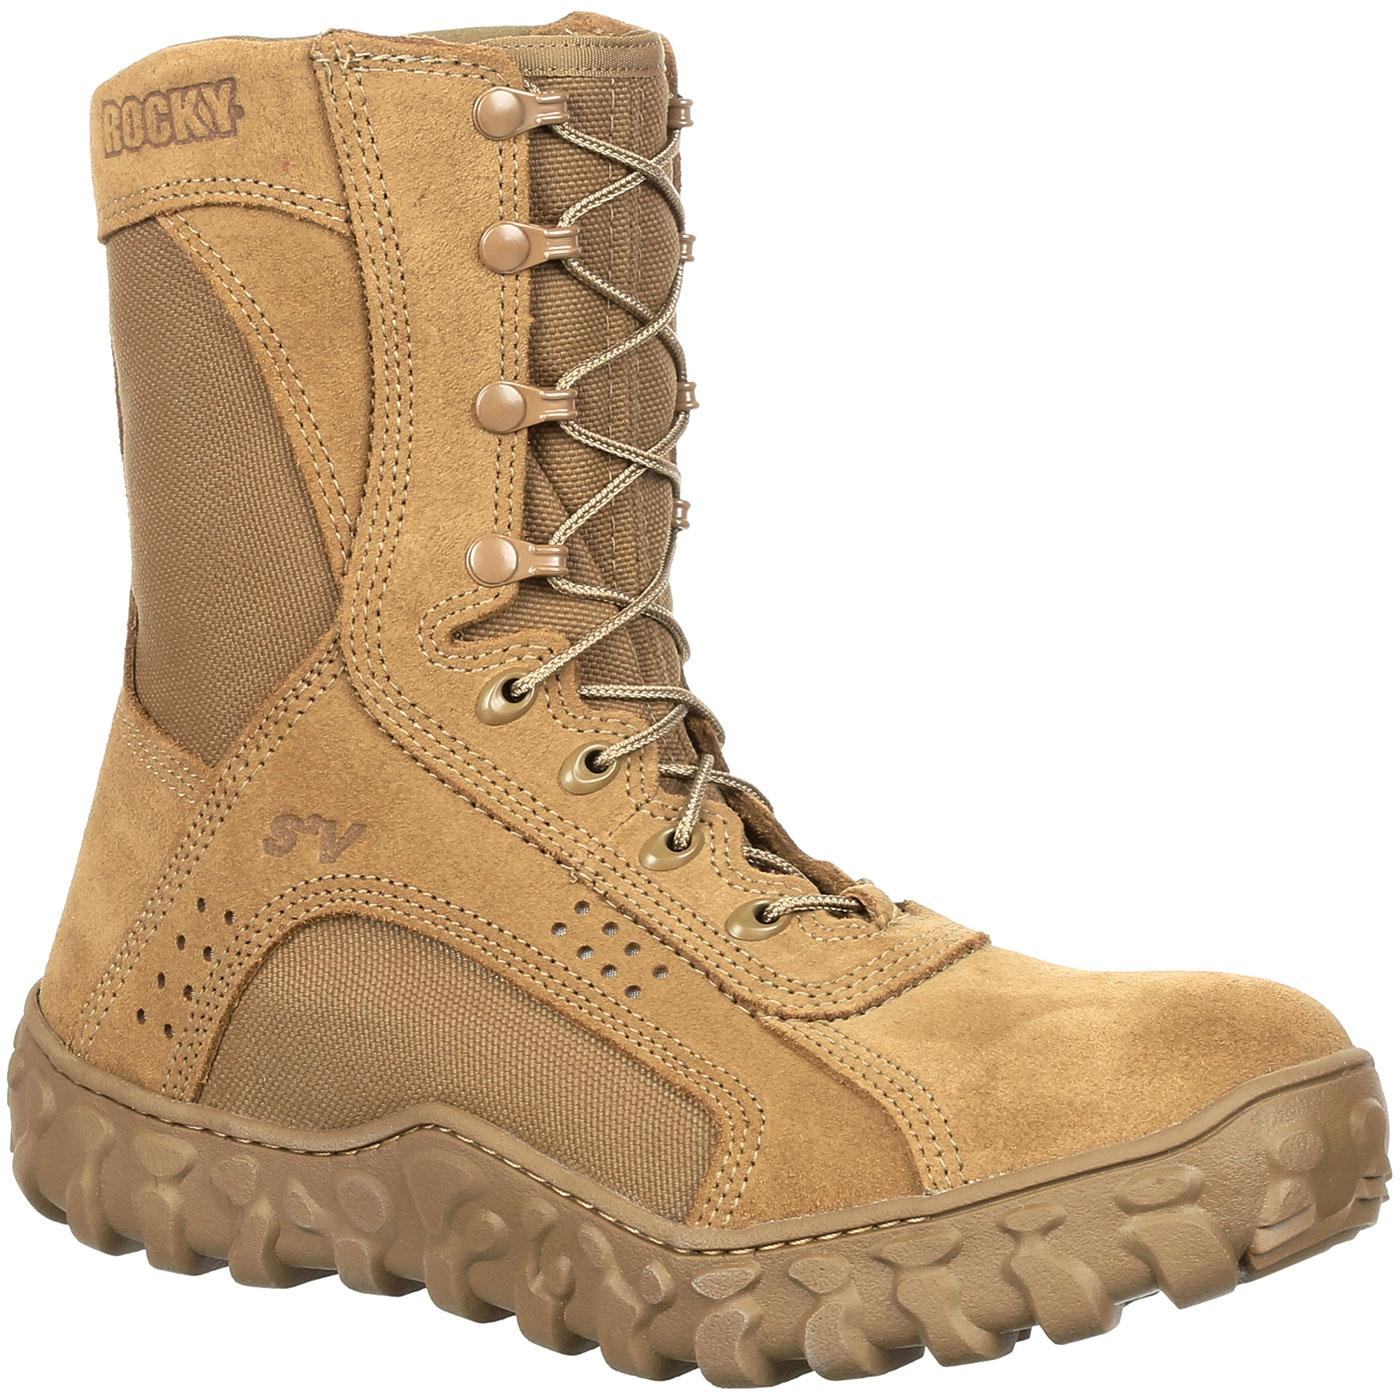 Rocky S2V: Steel Toe Tactical Military Boot, style RKC053